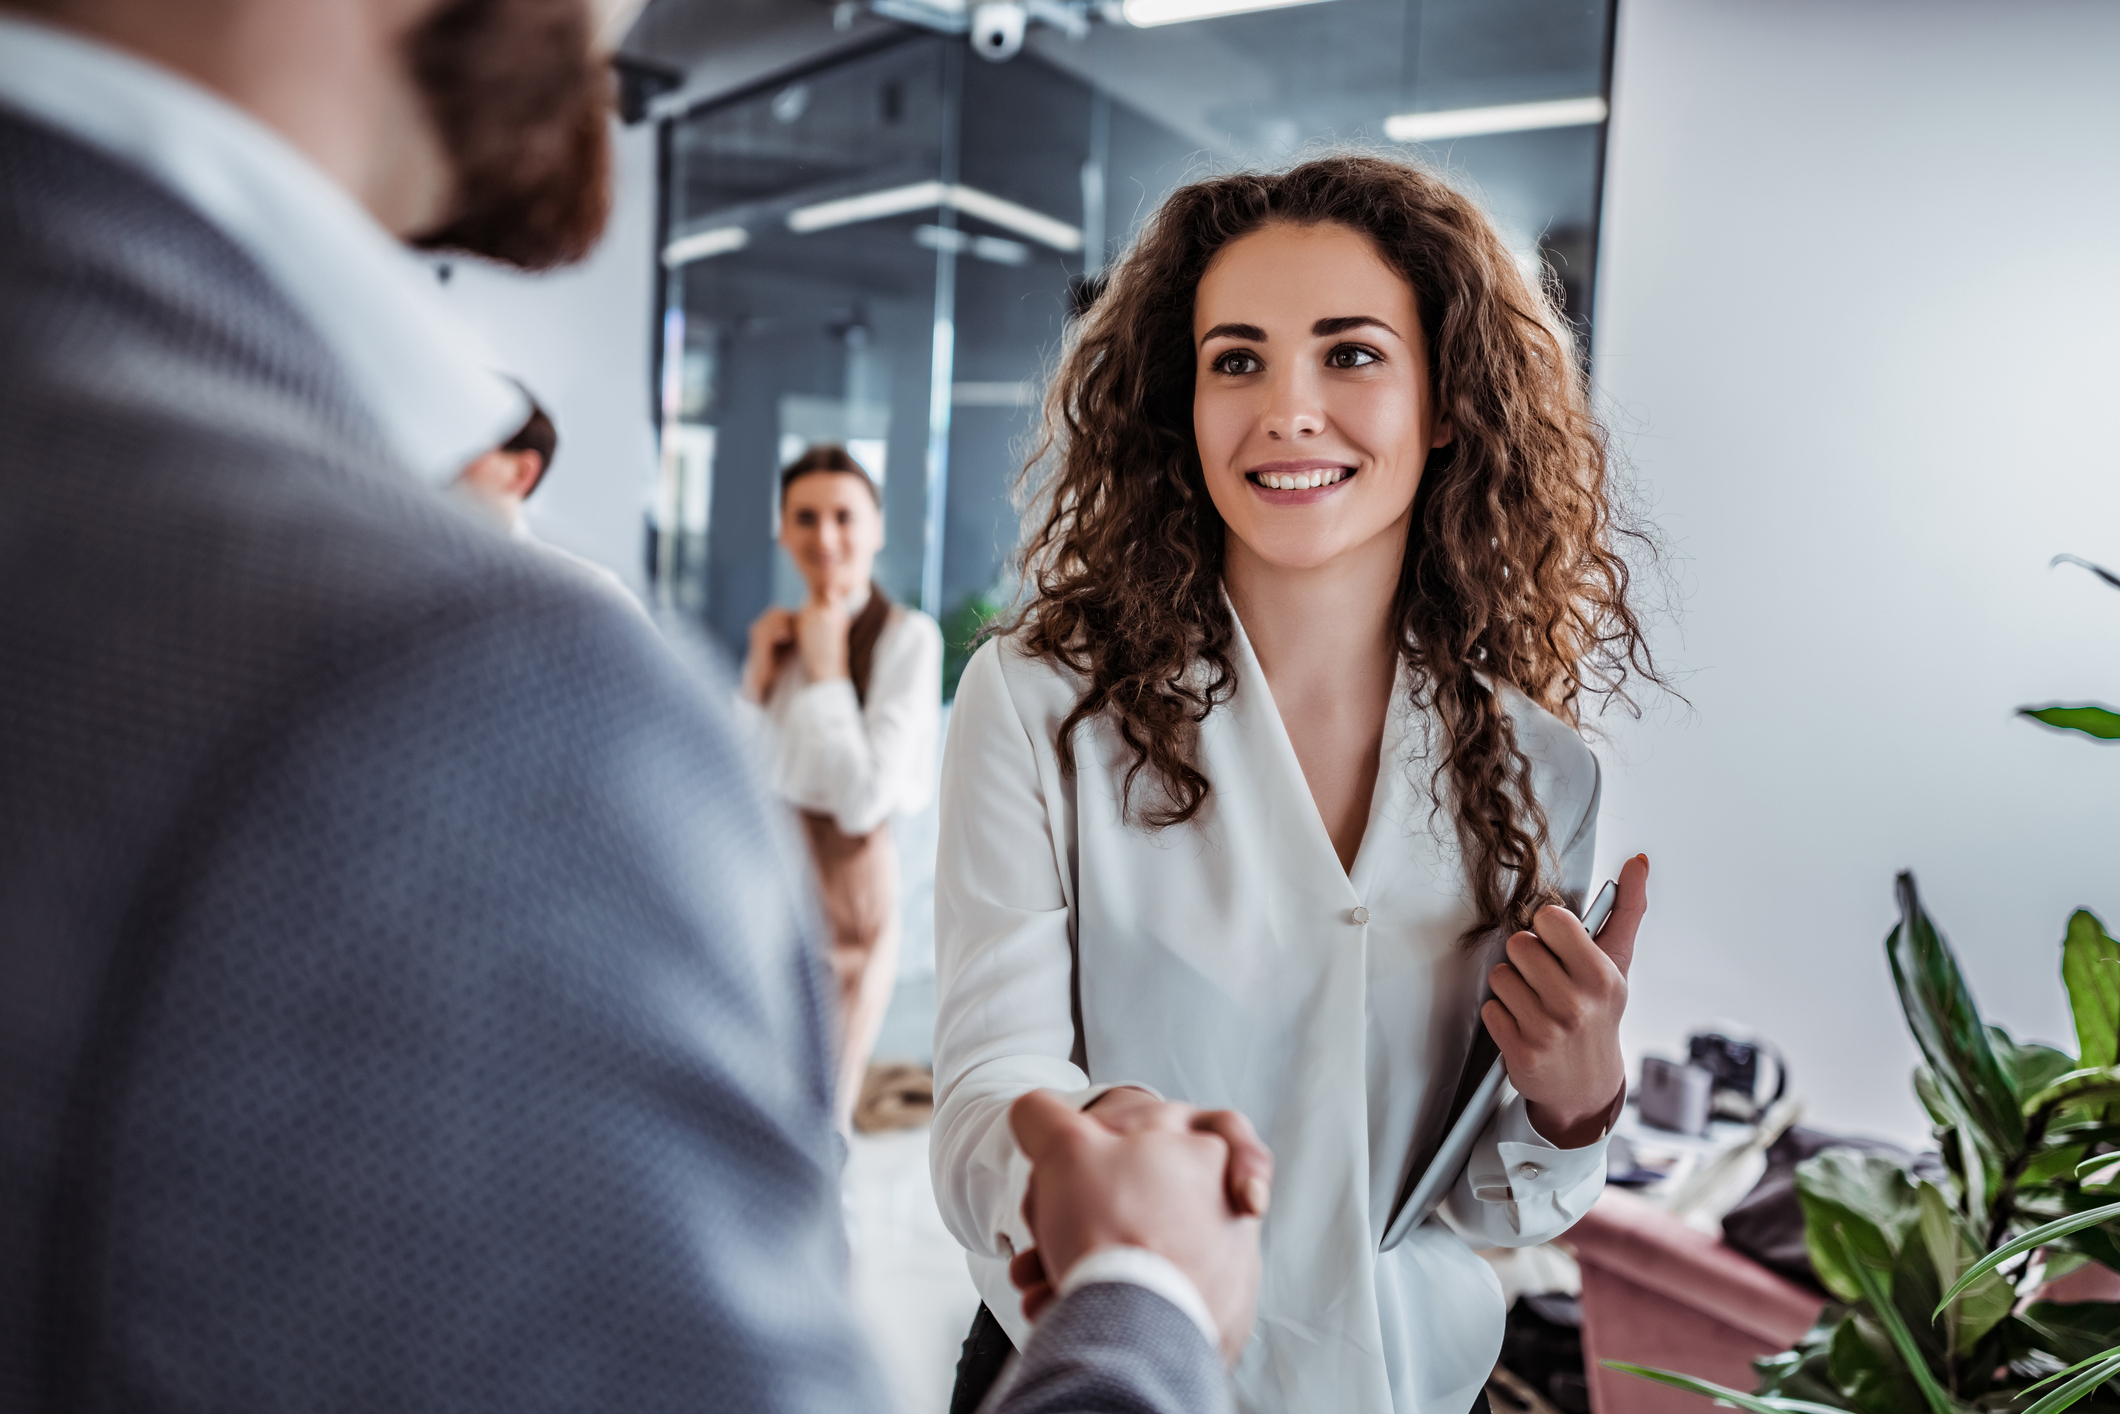 stock image of woman shaking hands with colleague